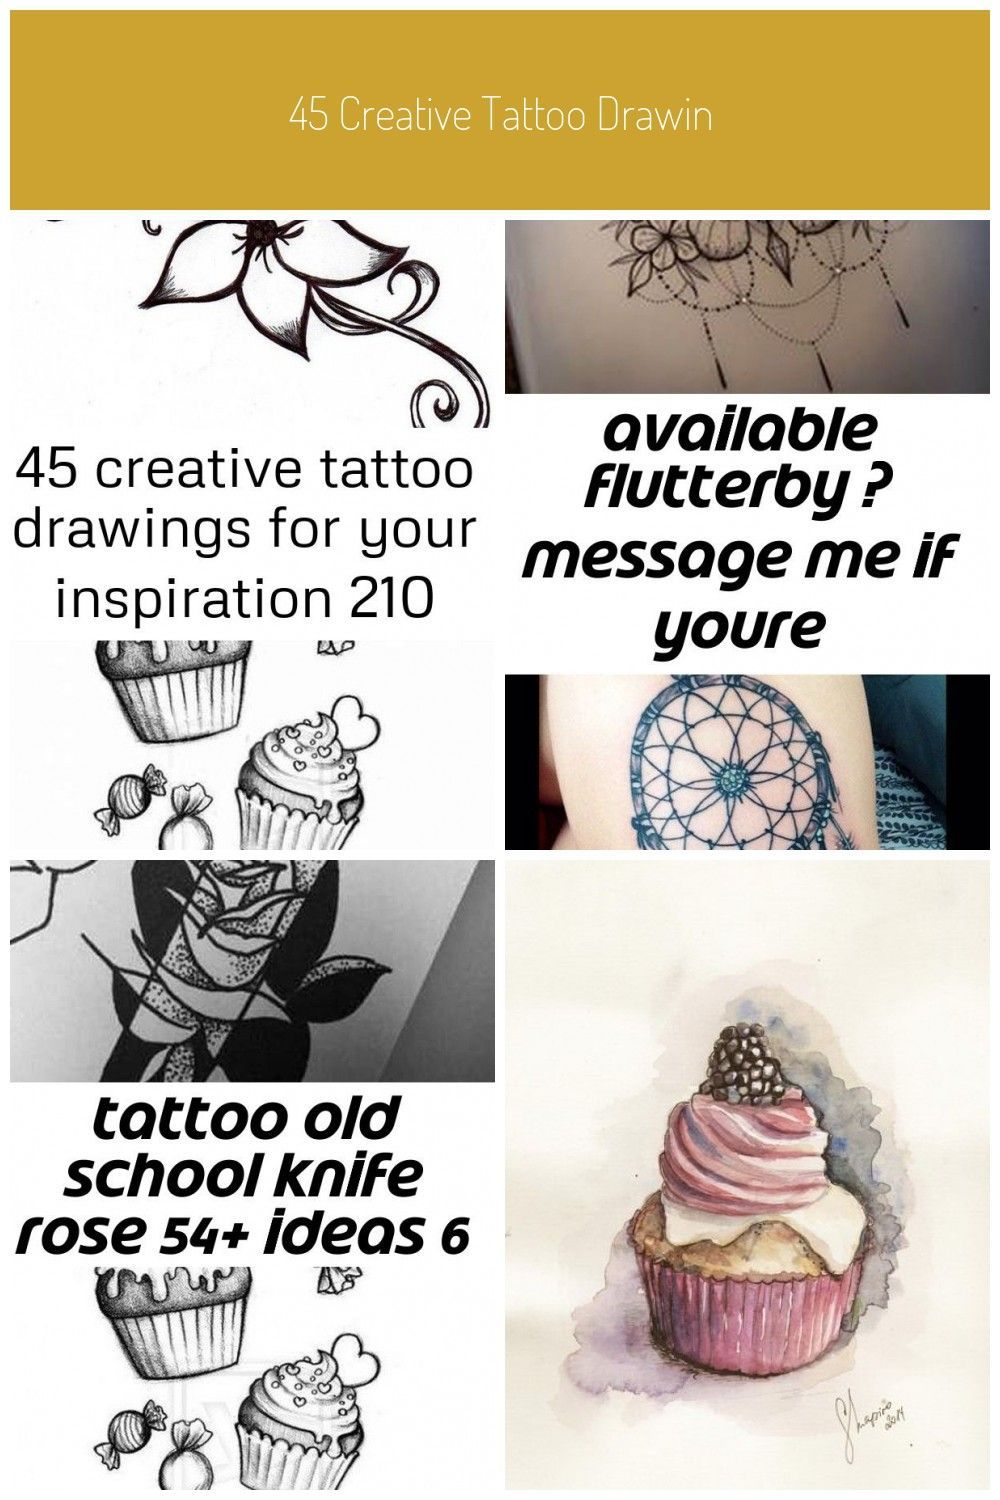 45 Creative Tattoo Drawings For Your Inspiration; colorful tattoos; thick tattoo